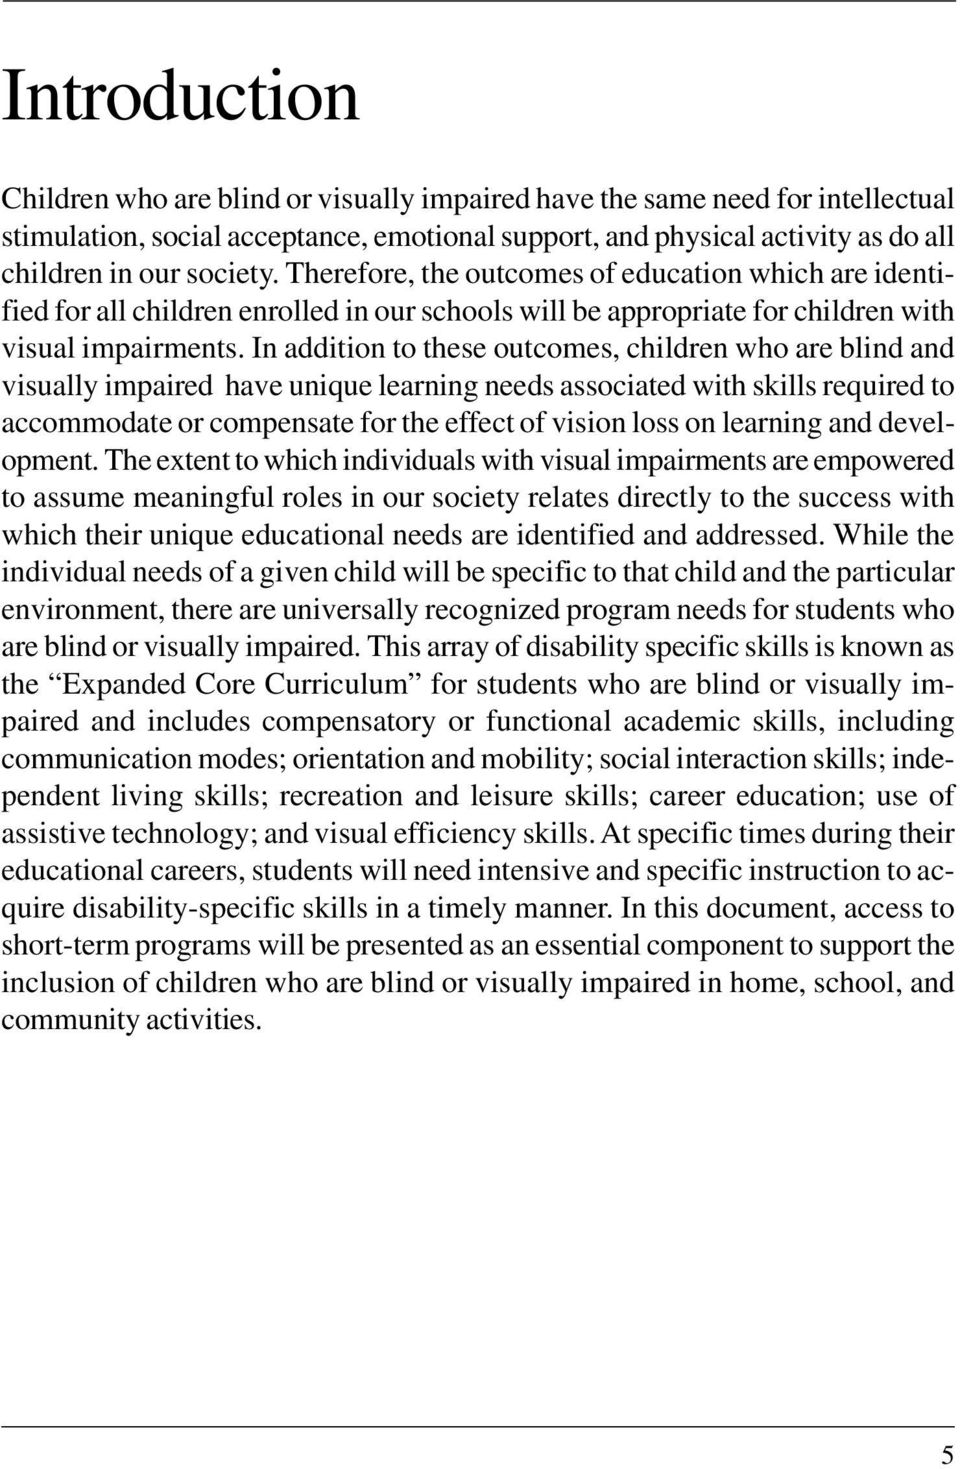 In addition to these outcomes, children who are blind and visually impaired have unique learning needs associated with skills required to accommodate or compensate for the effect of vision loss on